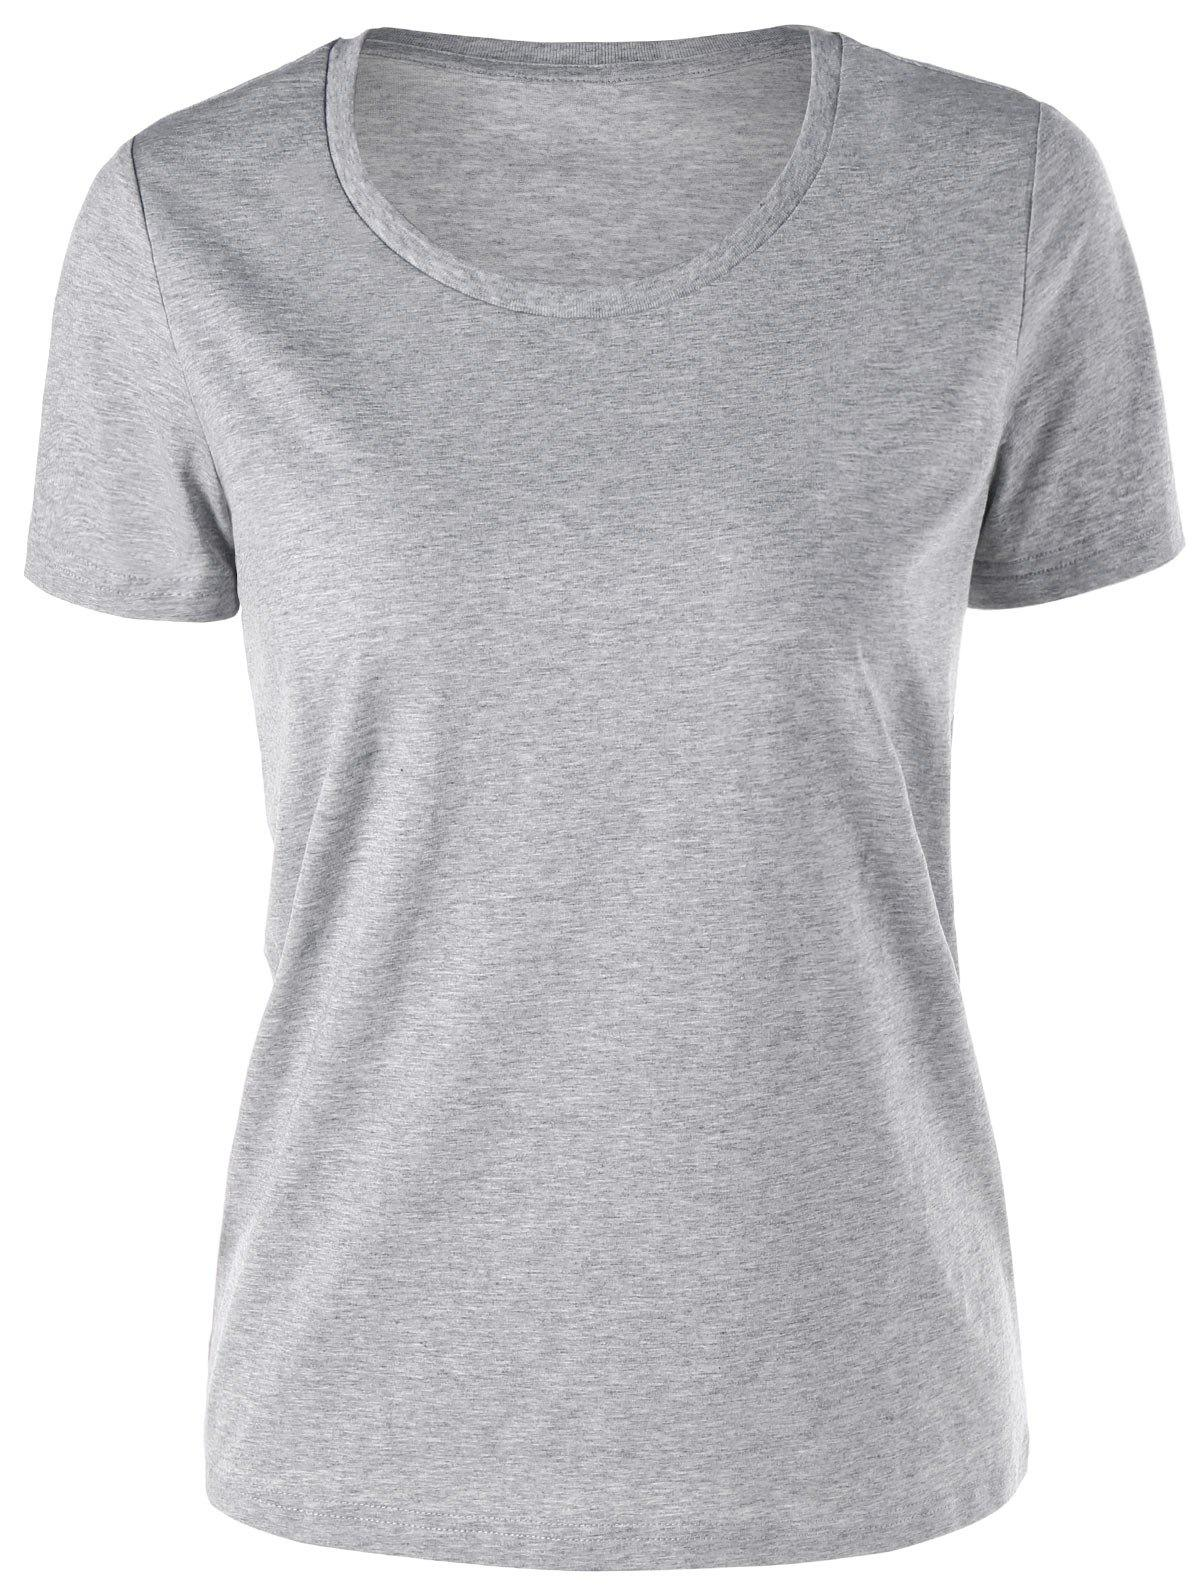 Basic Short Sleeve T-shirt - GRAY 2XL